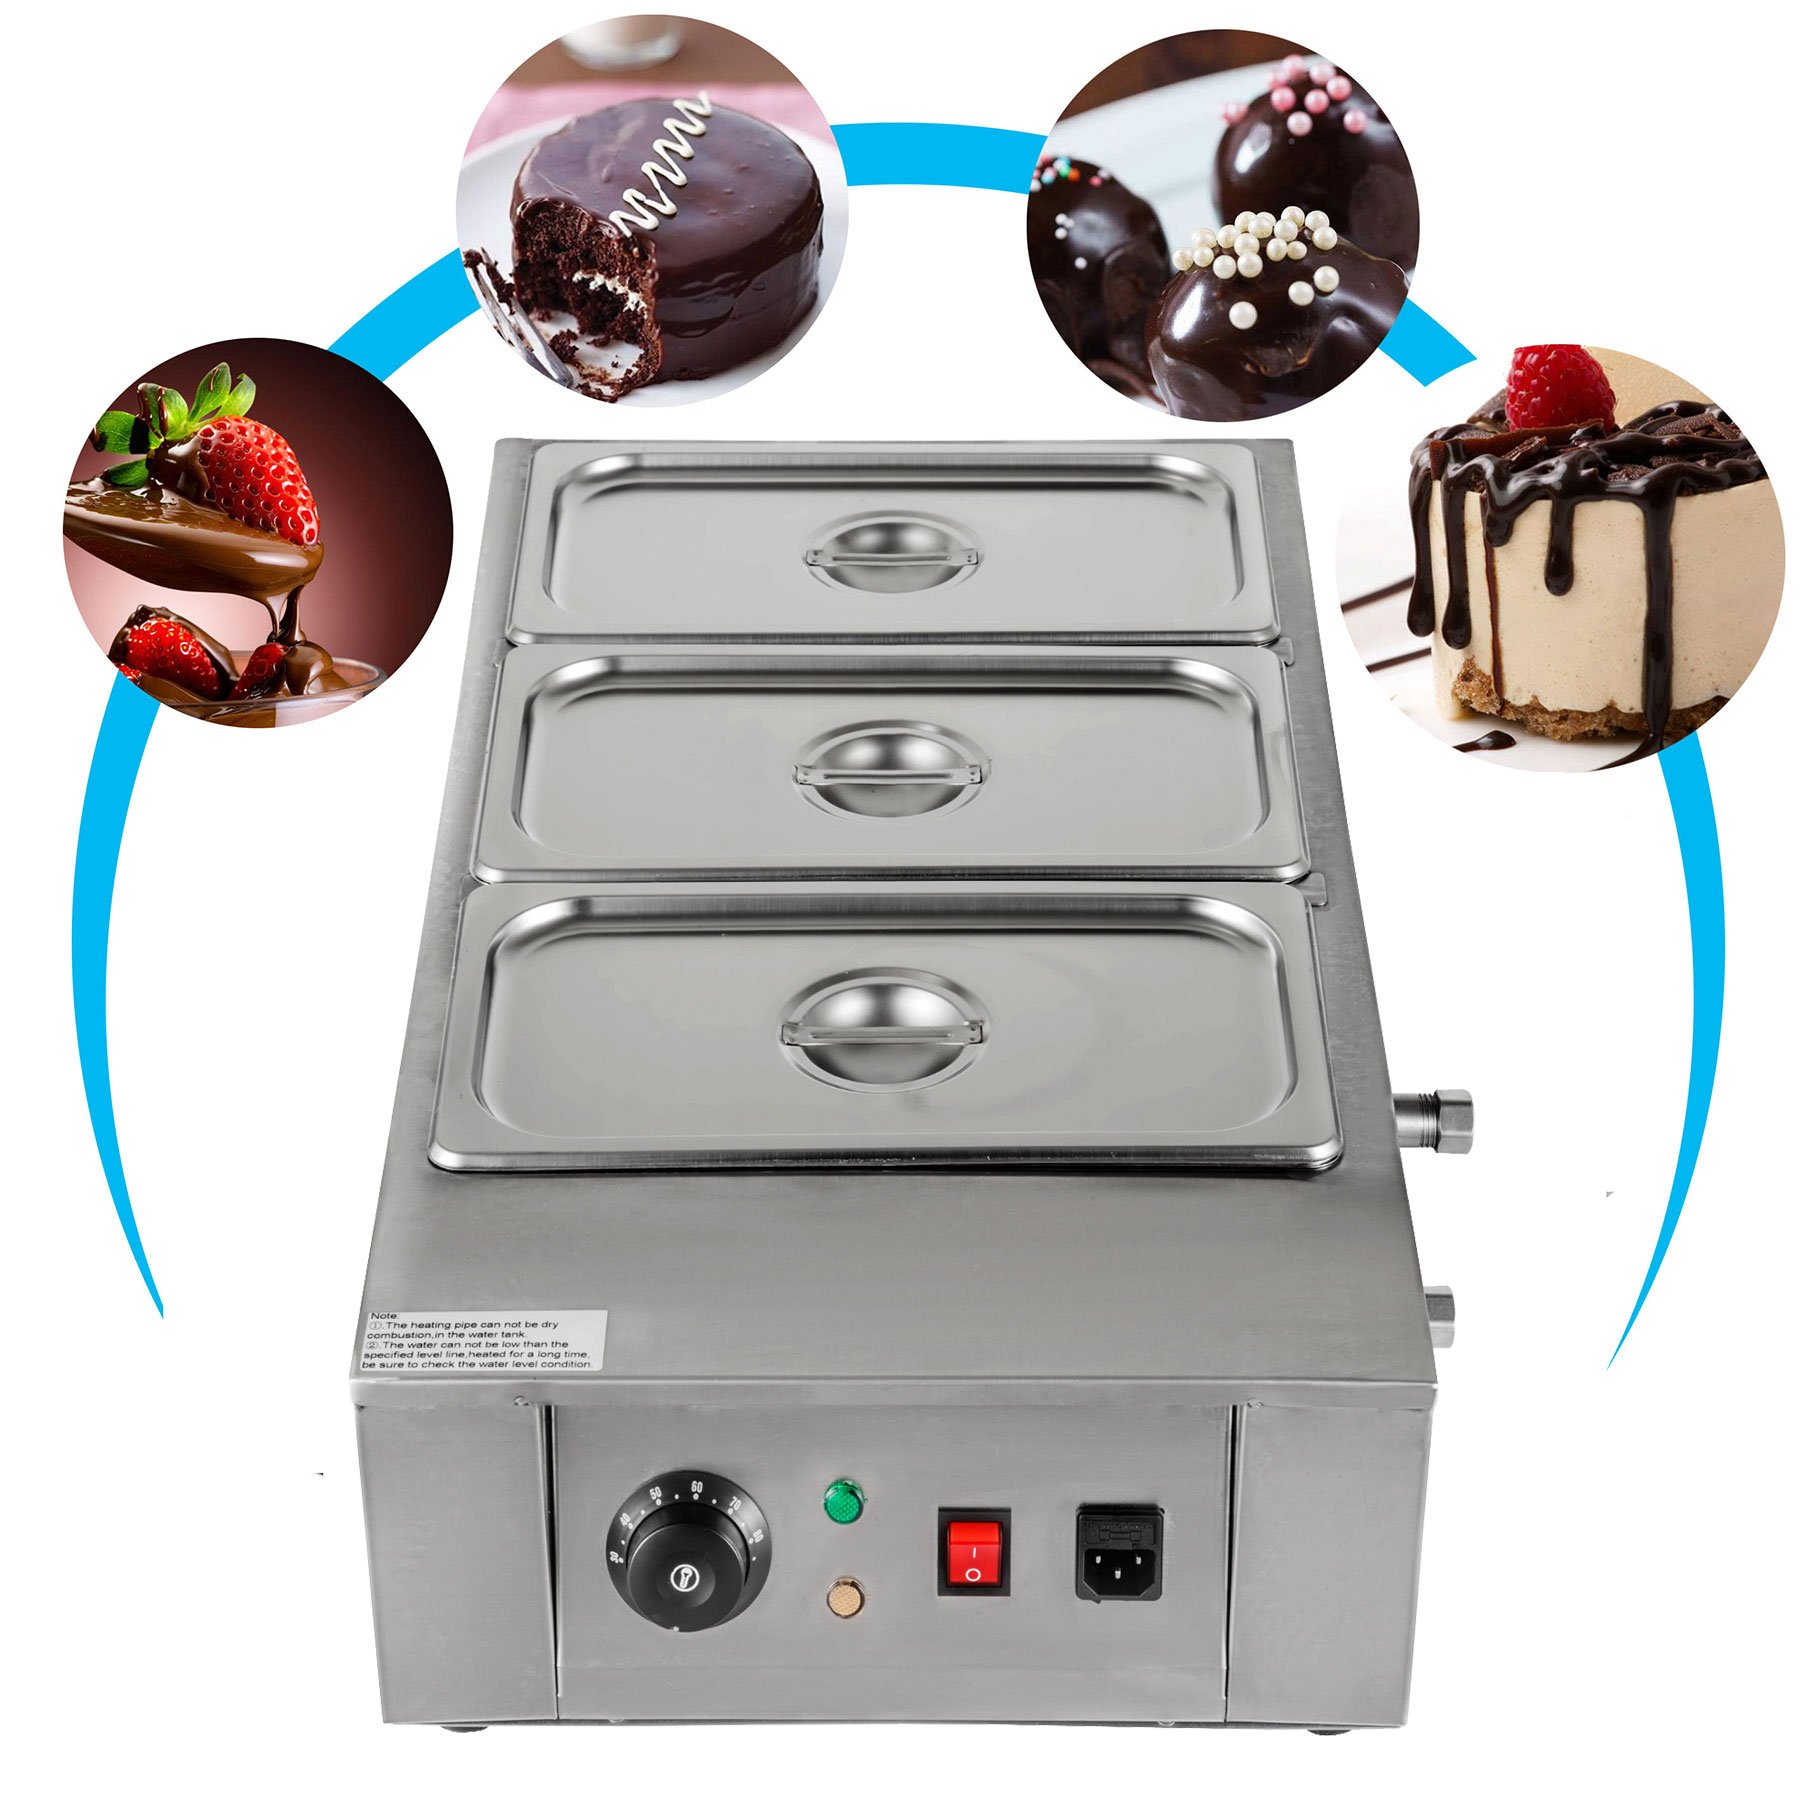 VEVOR 1KW Electric Chocolate Melting Pot Machine 3 Tanks 26.45lbs Capacity Commercial Home Electric Chocolate Heater Double Boiler Electric Chocolate Melter (3Tanks)